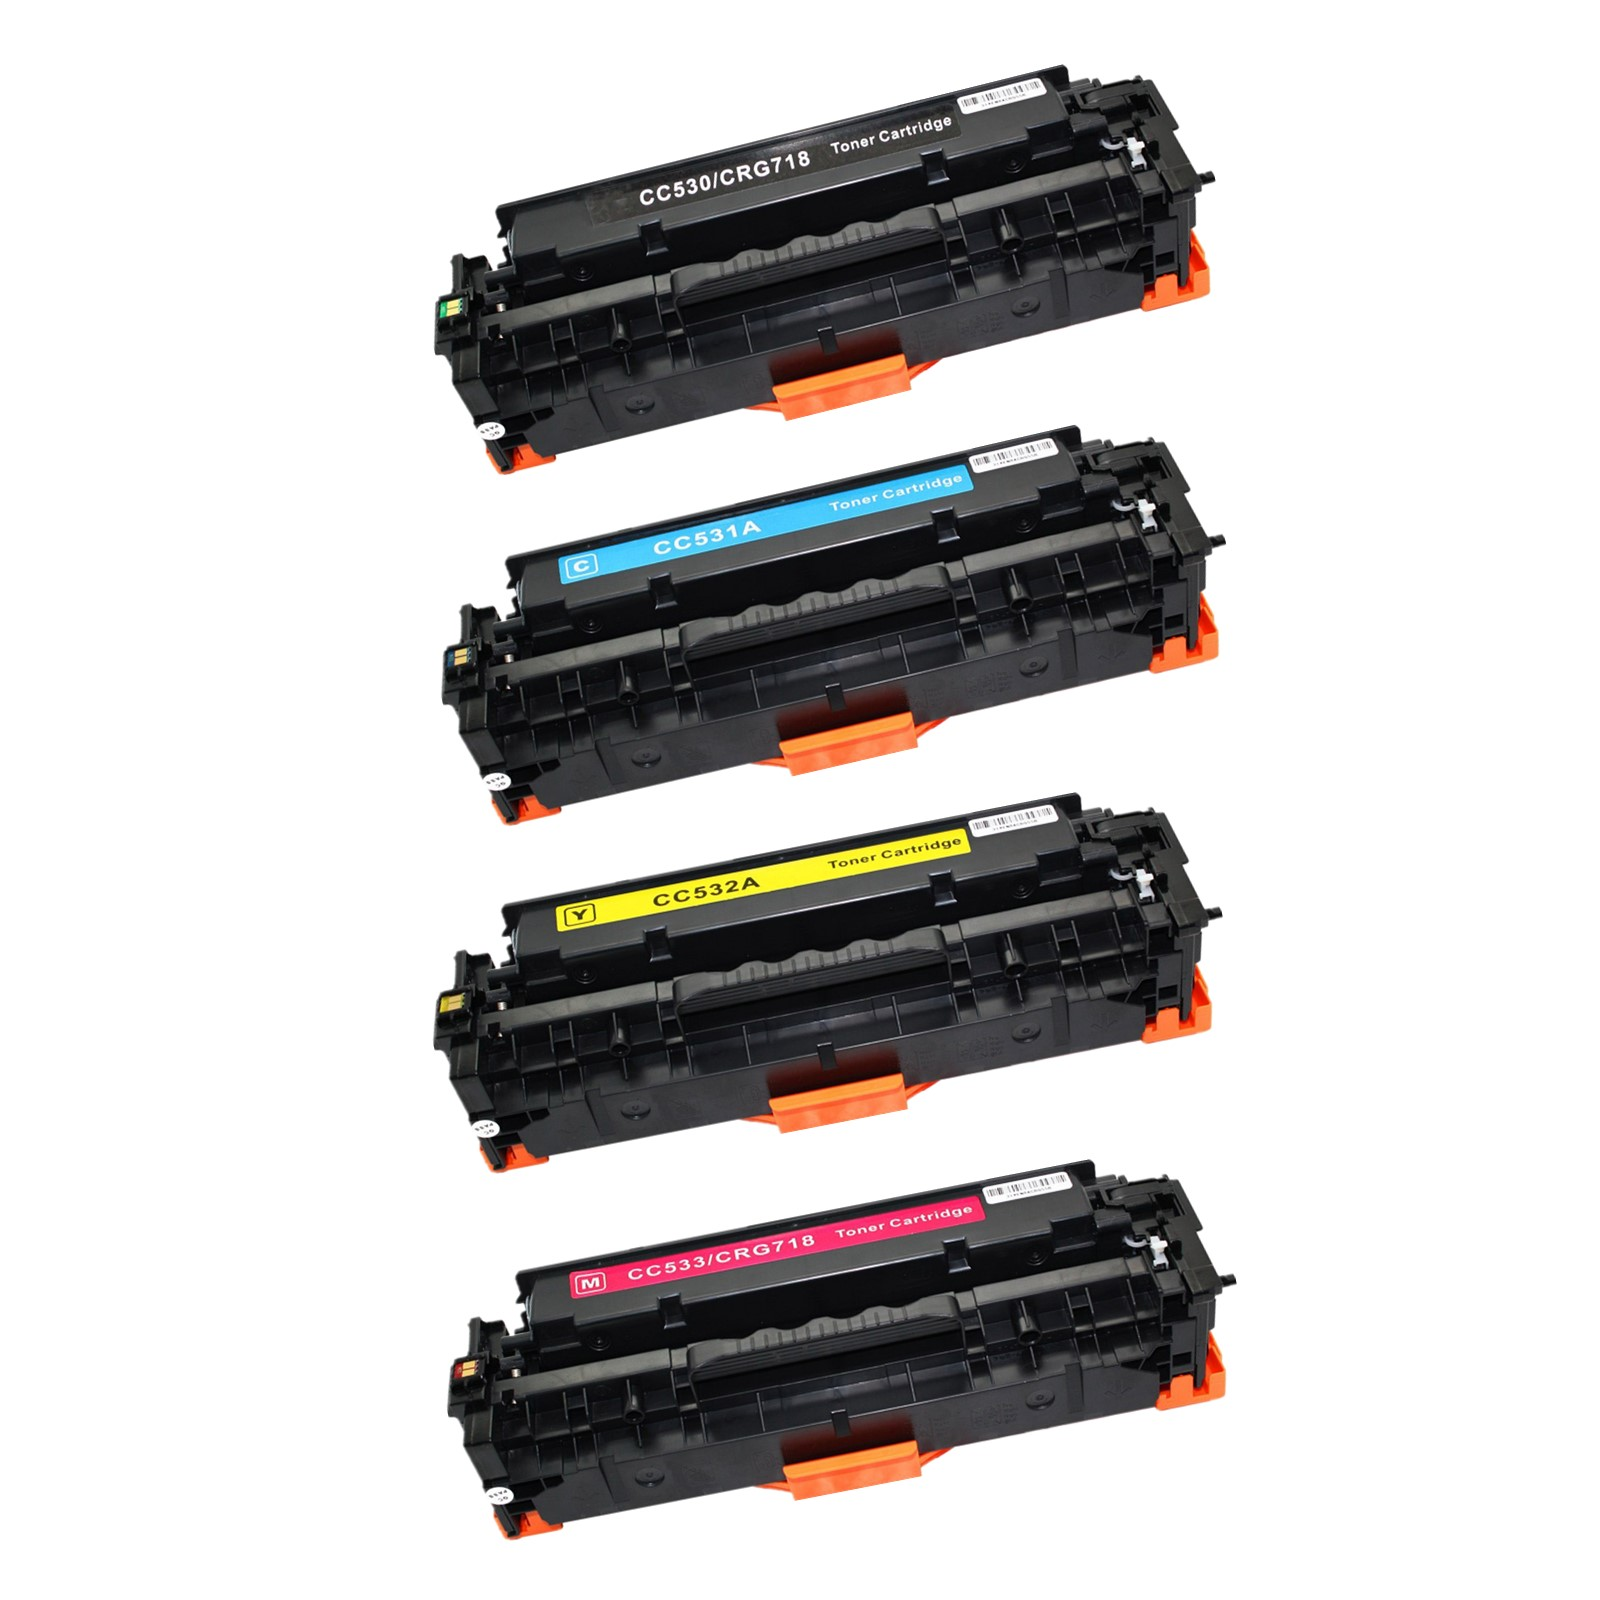 Cyan Yellow Magenta-Combination Compatible Toner Cartridge Replacement for Hp Cc530a Hp Color Laser Jet Cp2025 Cp2025n Cp2025dn Cp2025x Cm2320n Cm2320nf Printer with Chip Black